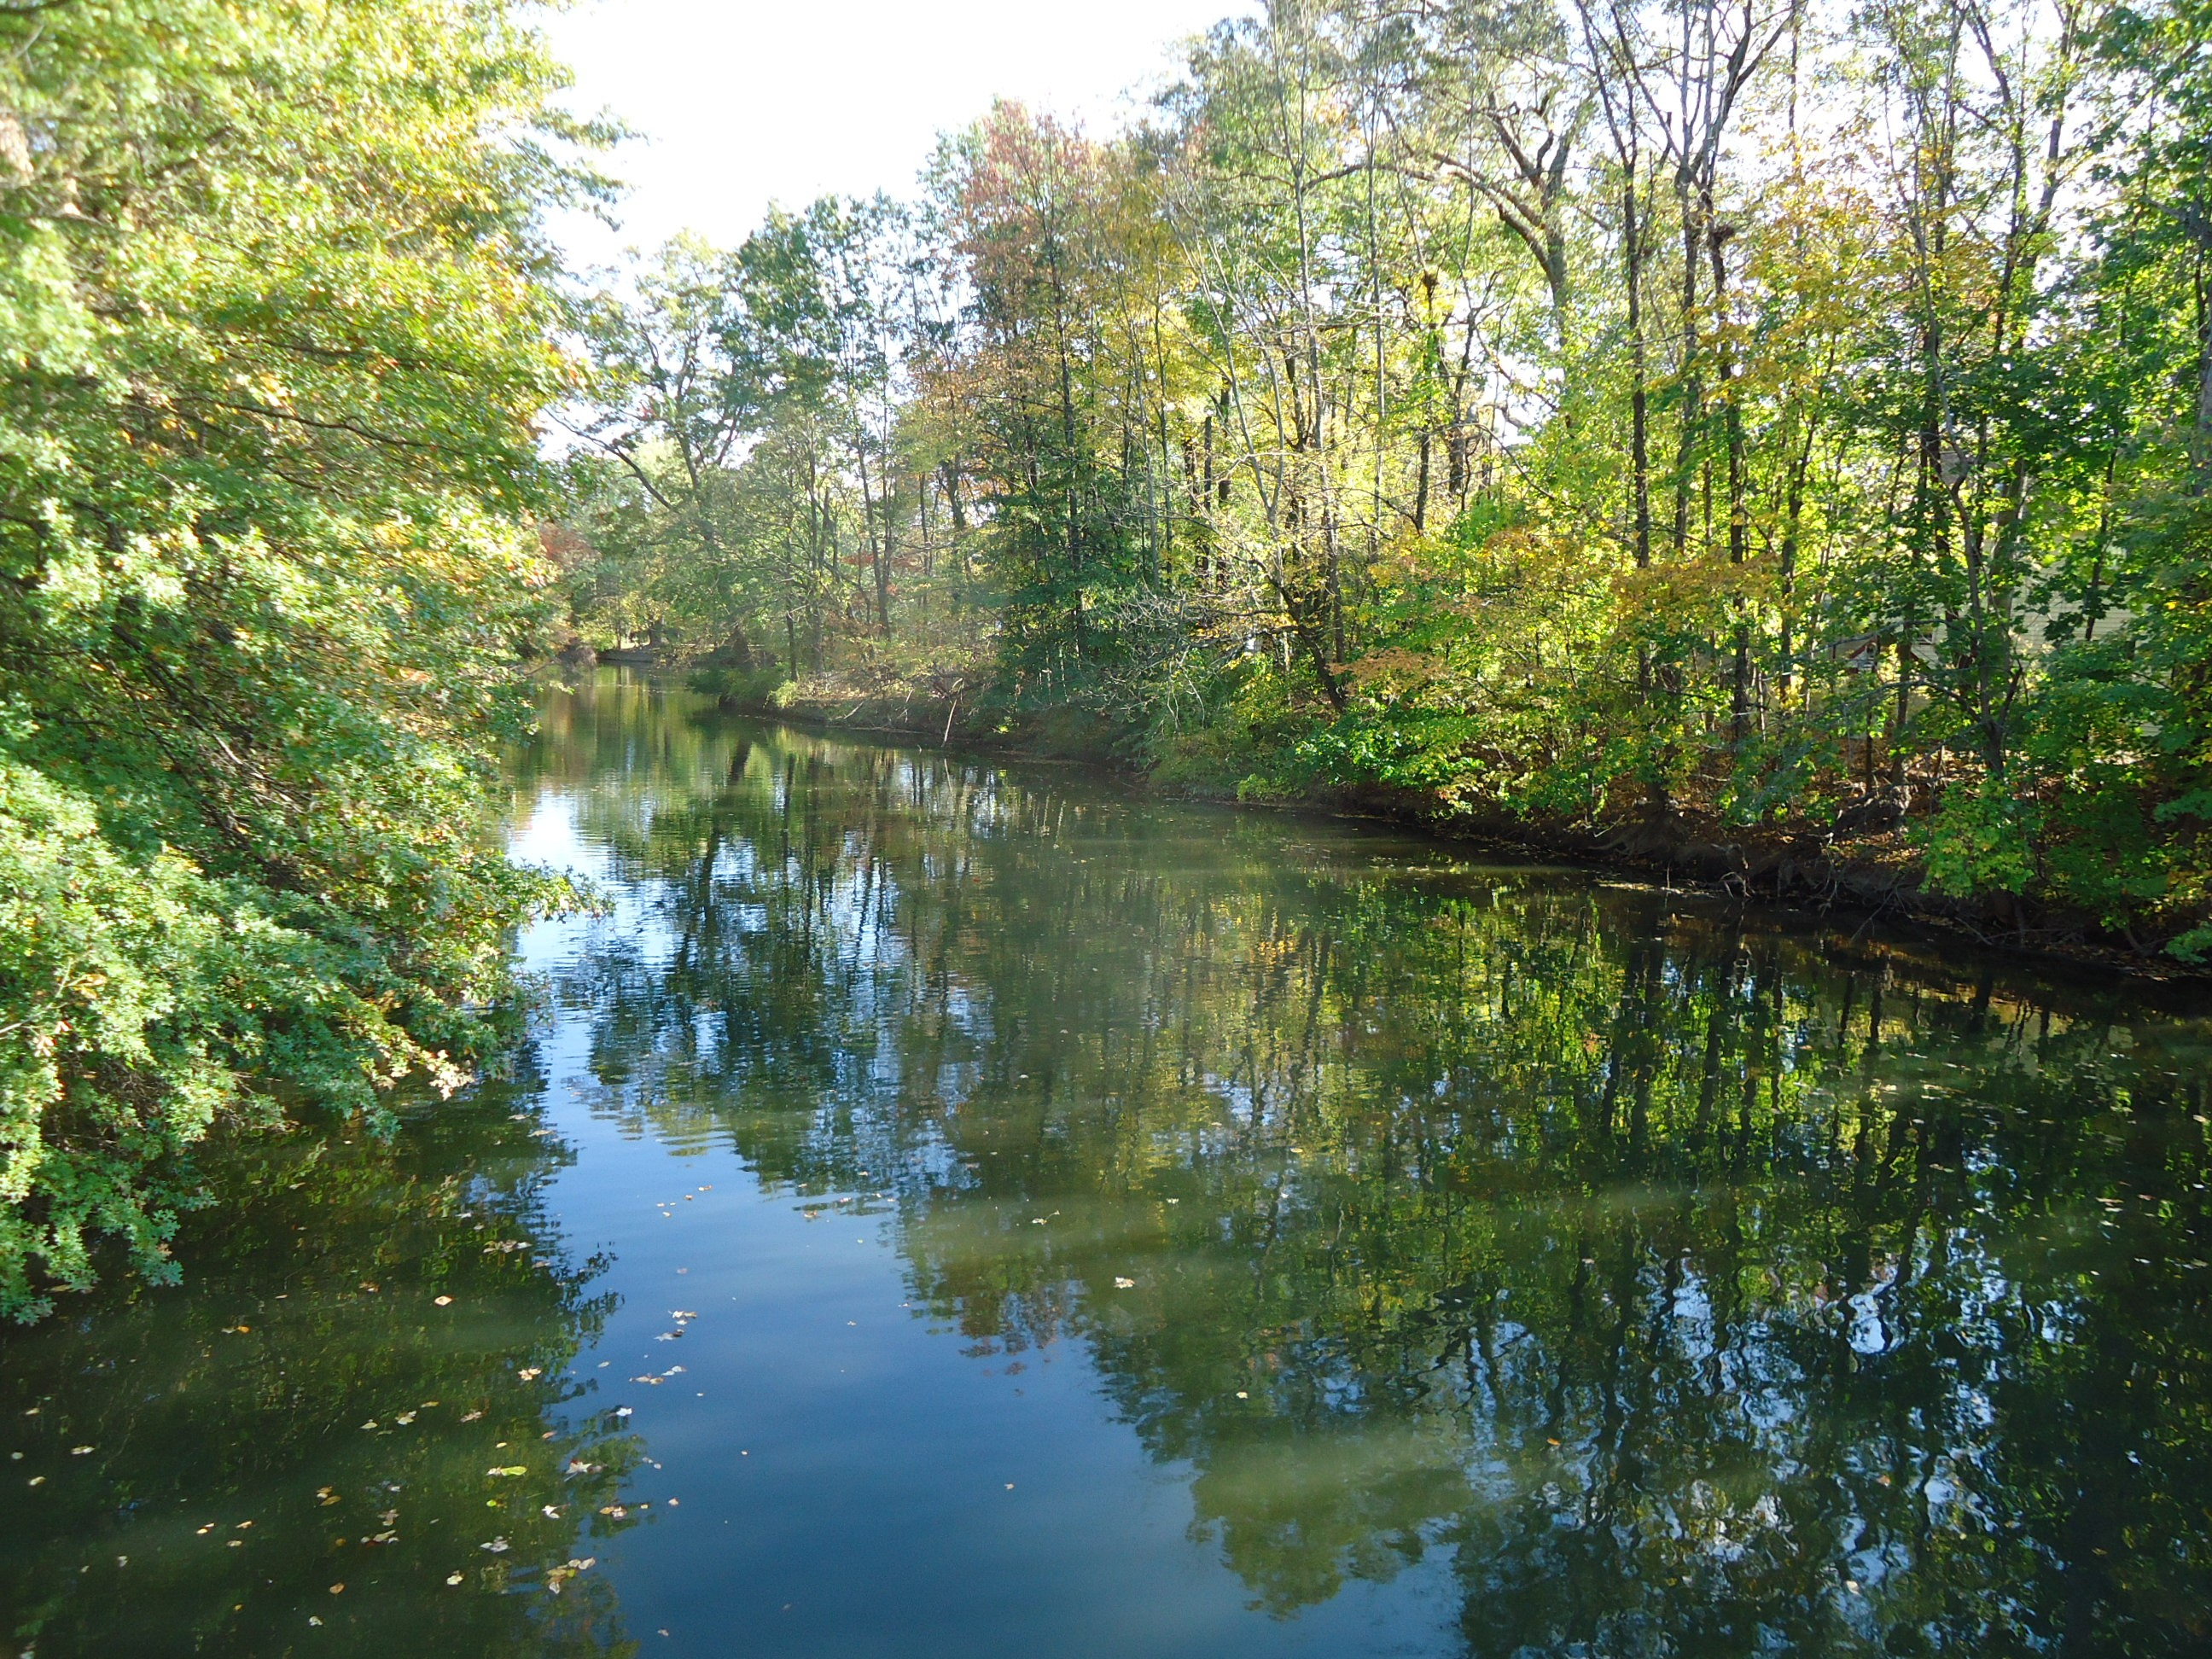 New jersey union county cranford - File Rahway River In Union County Nj In Autumn 1 Jpg